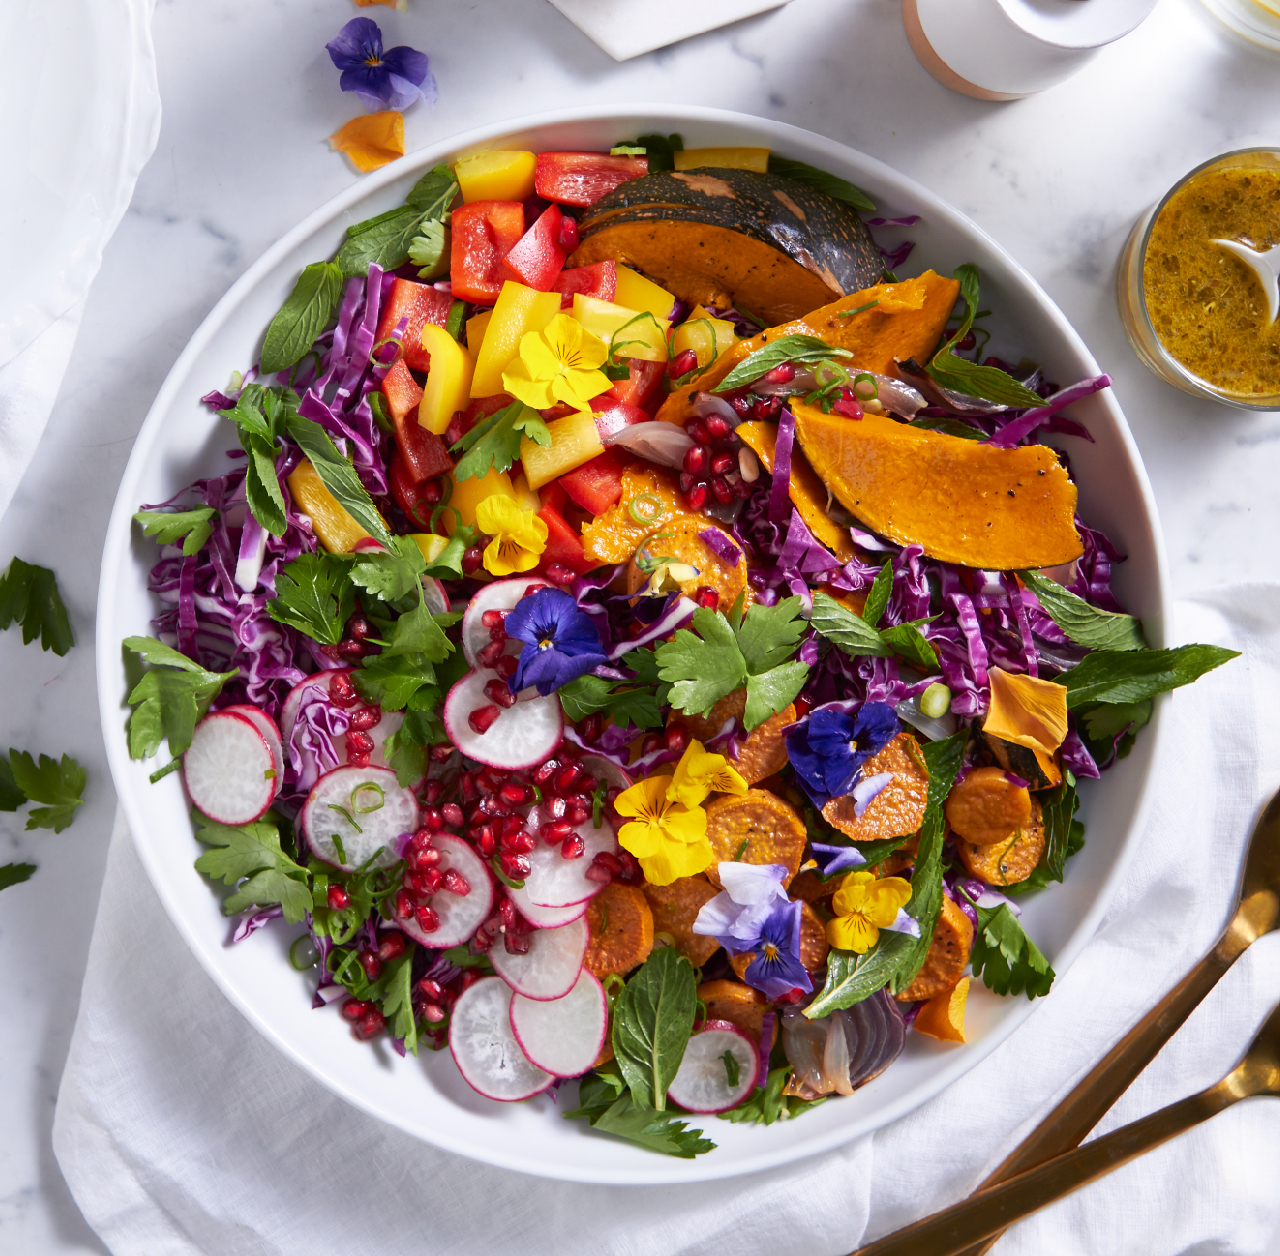 Easter recipe: Roast vegetable celebration salad